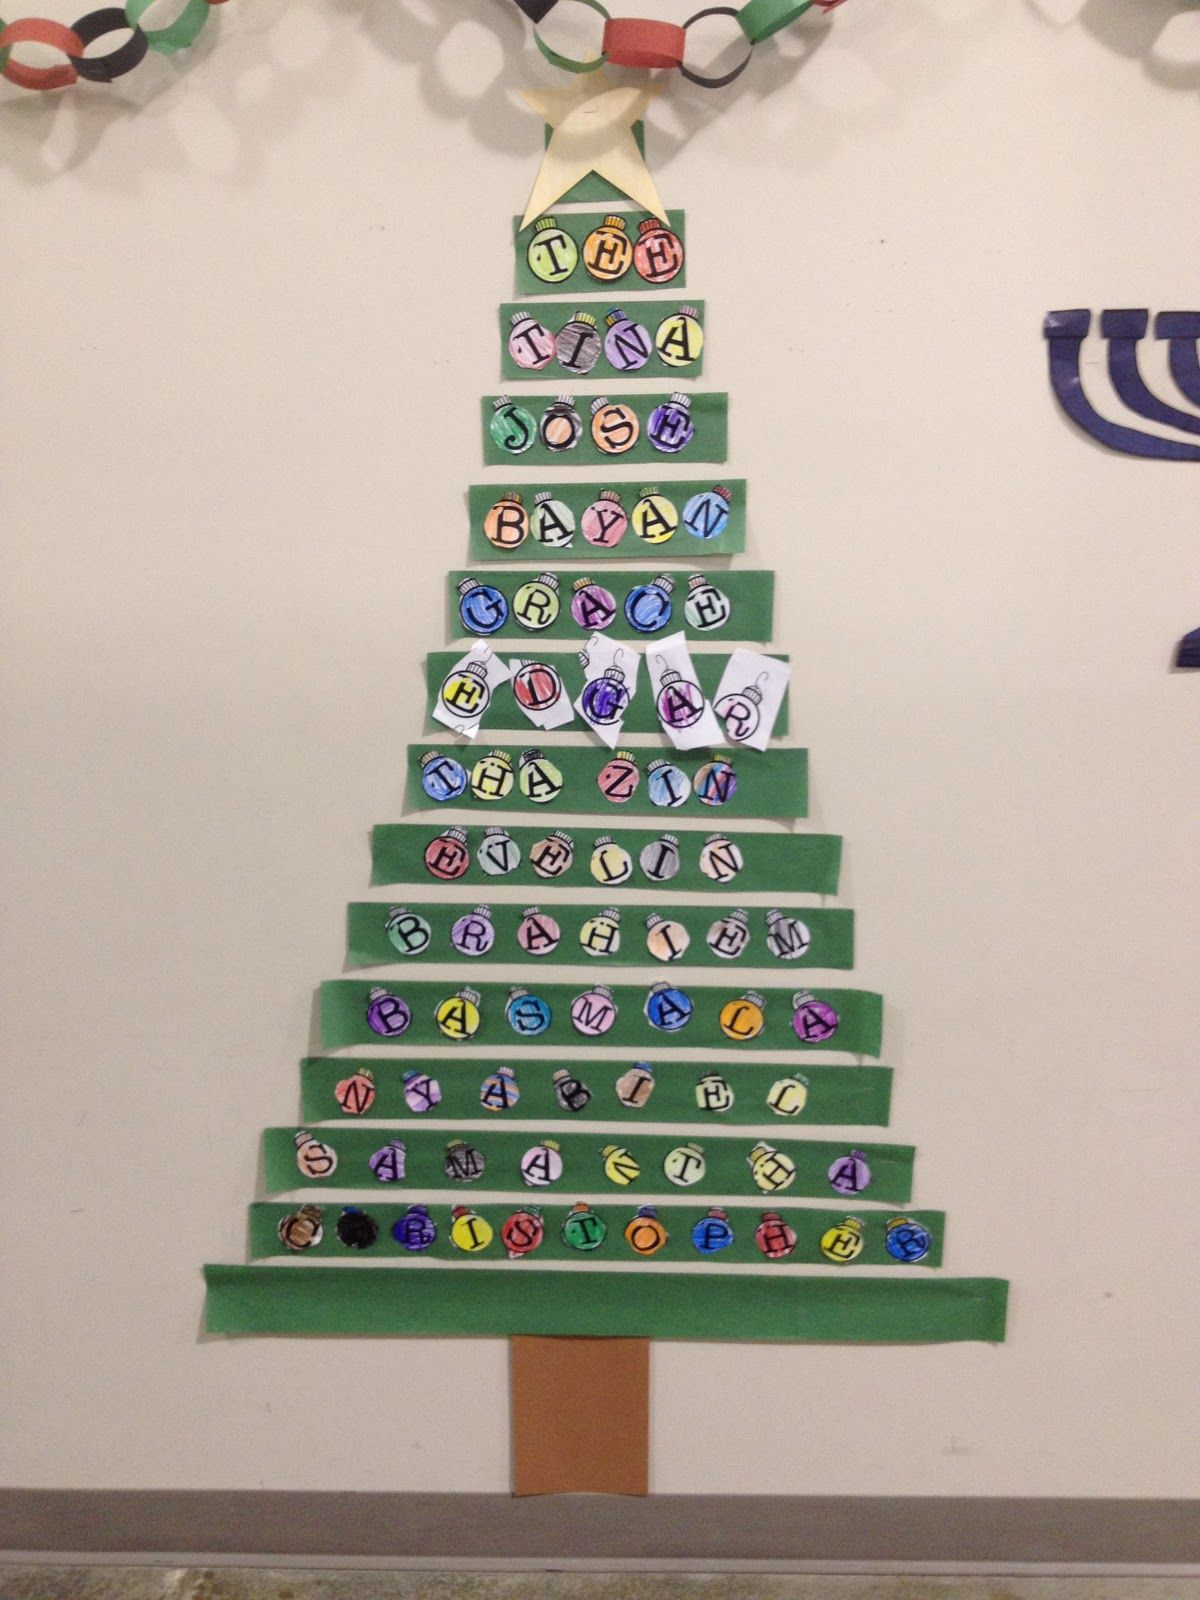 Christmas tree classroom door decorations - Classroom Christmas Tree With Names Great For Hallway